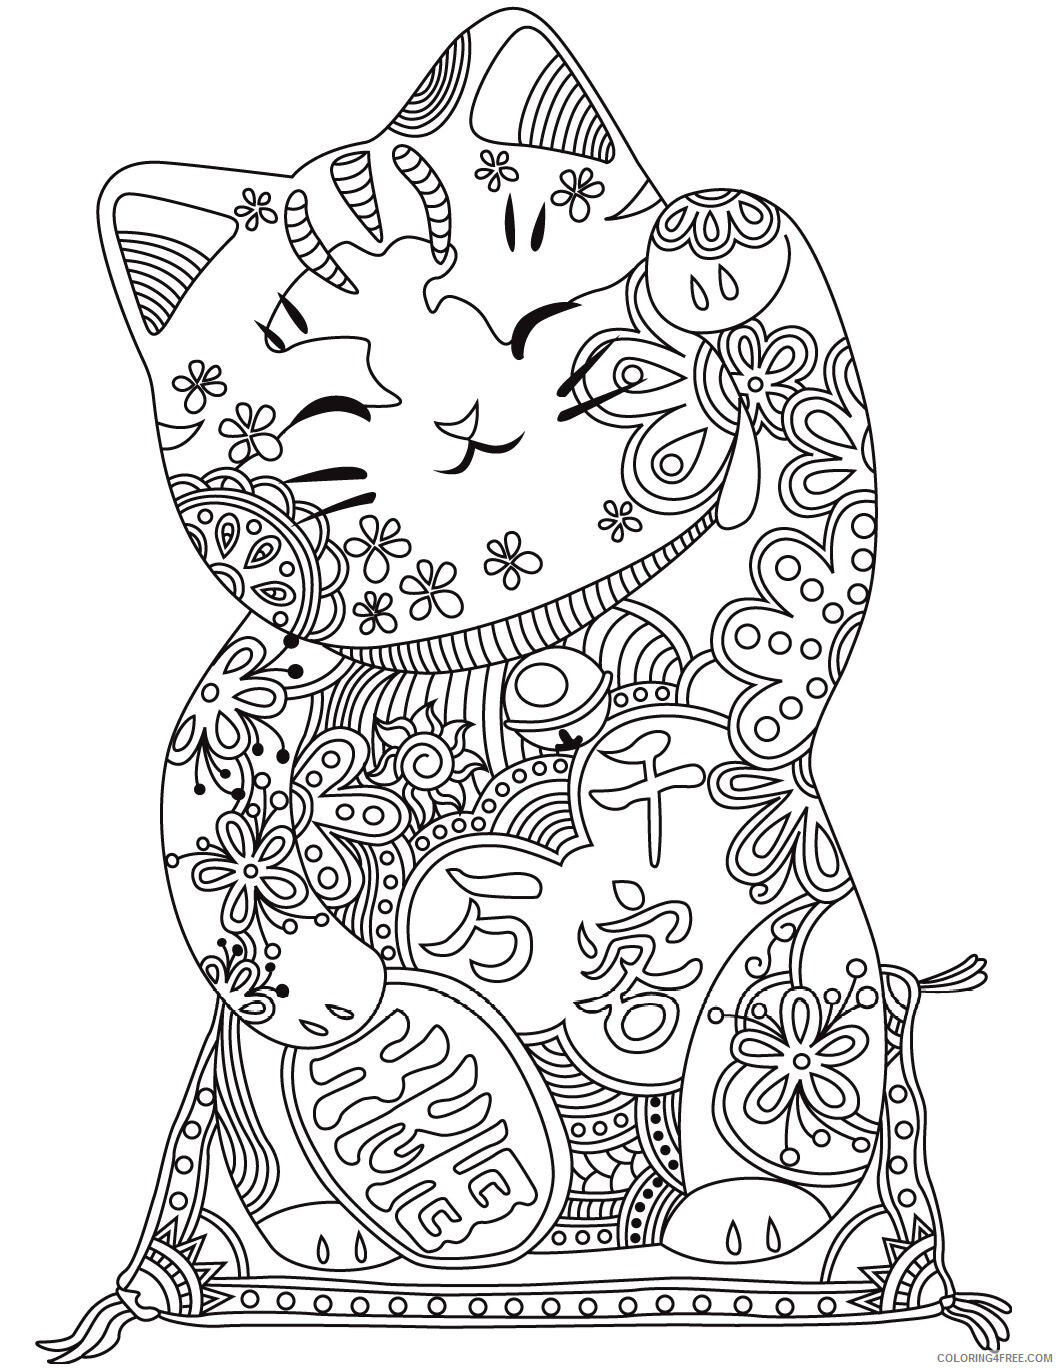 Adult Cat Coloring Pages Cute Free Cat for Adults Printable 2020 208 Coloring4free